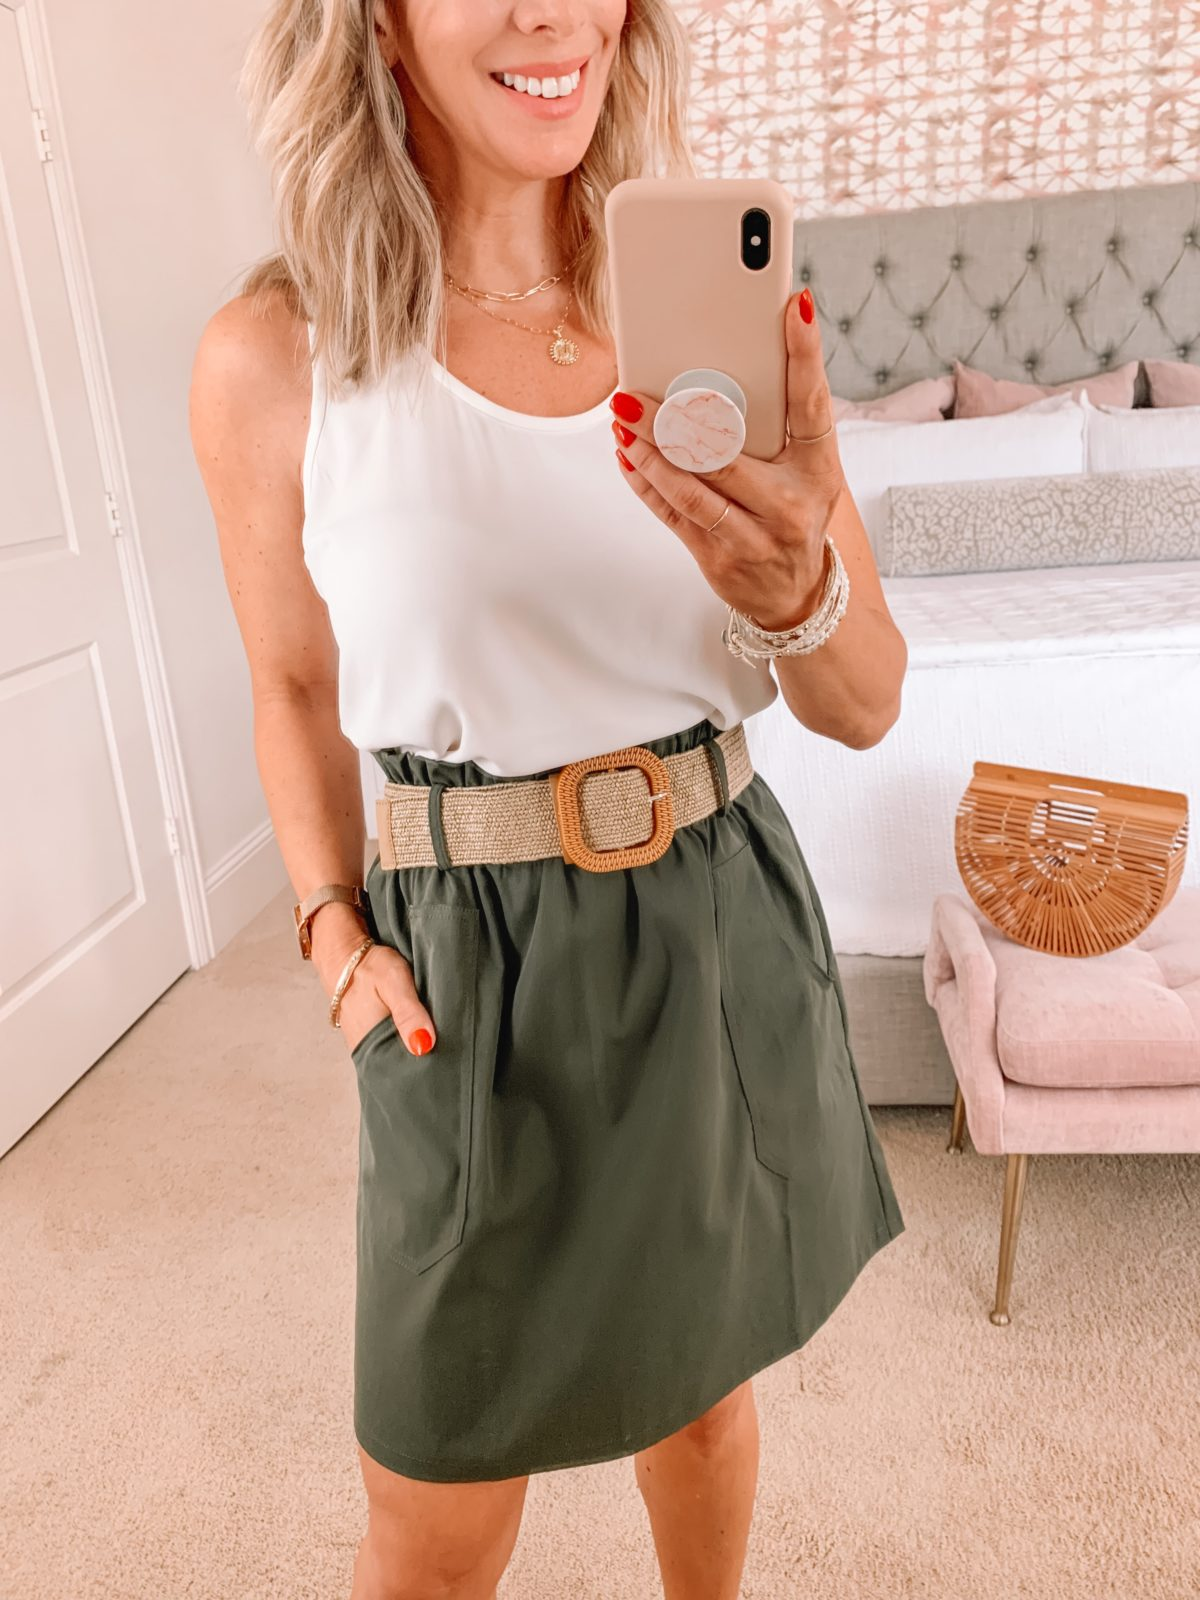 Amazon Fashion Faves, White Tank, Olive Skirt, Stretchy Belt, Bamboo Clutch, Sandals